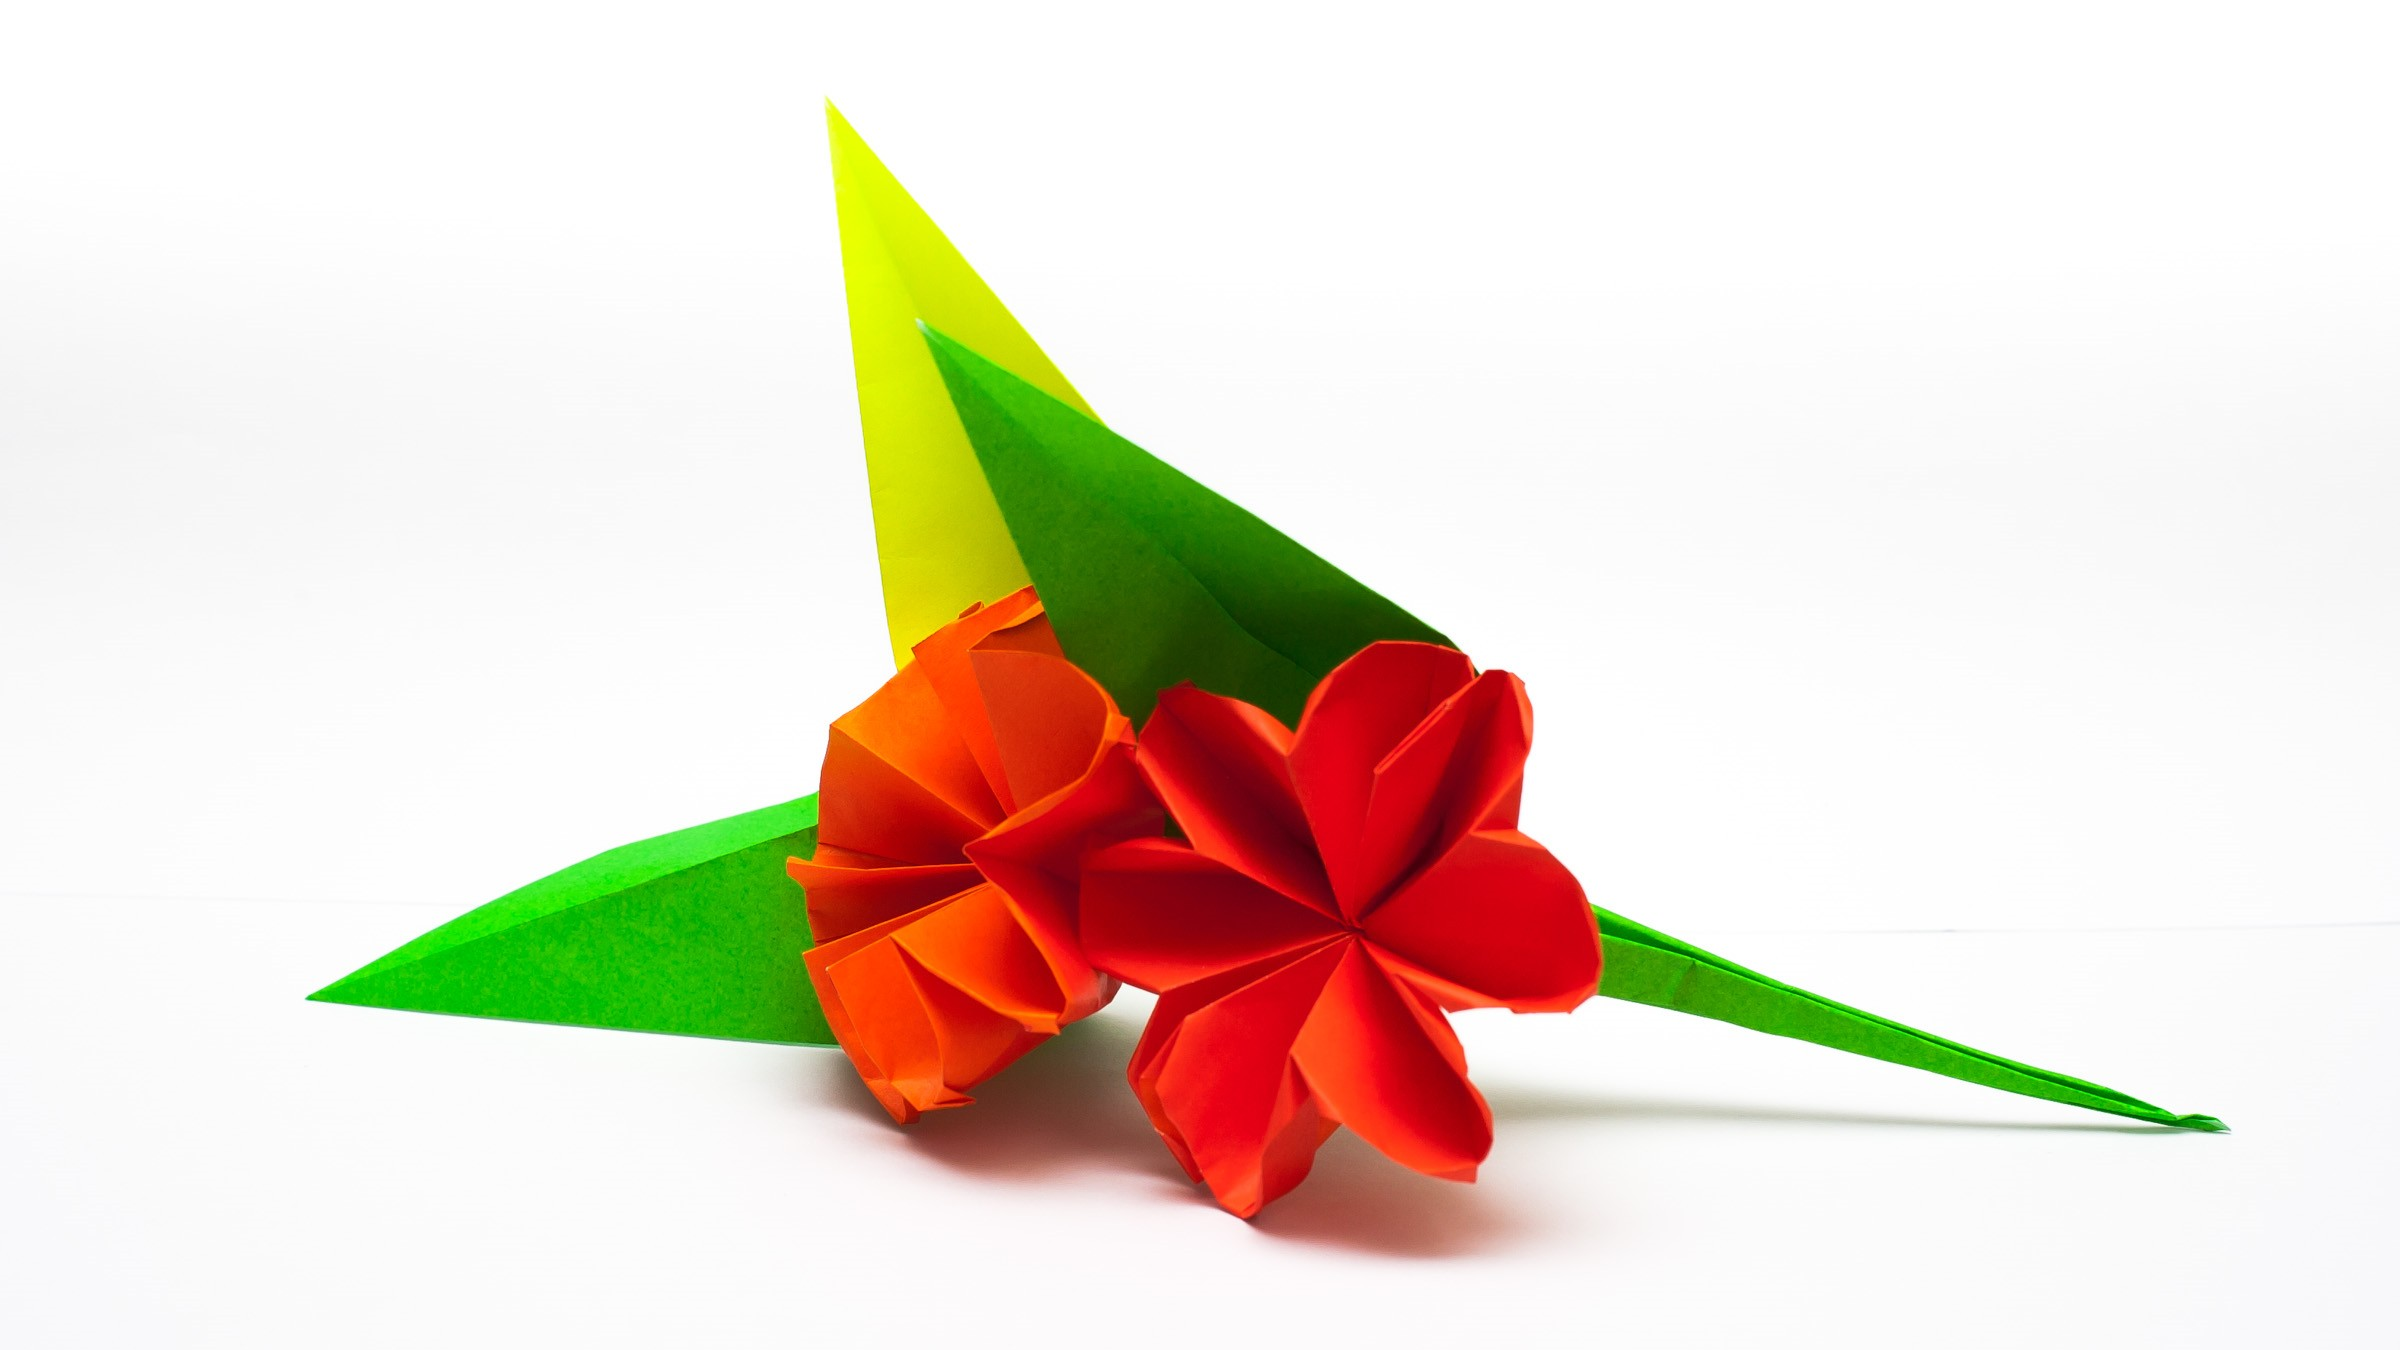 Origami Flower Diagram